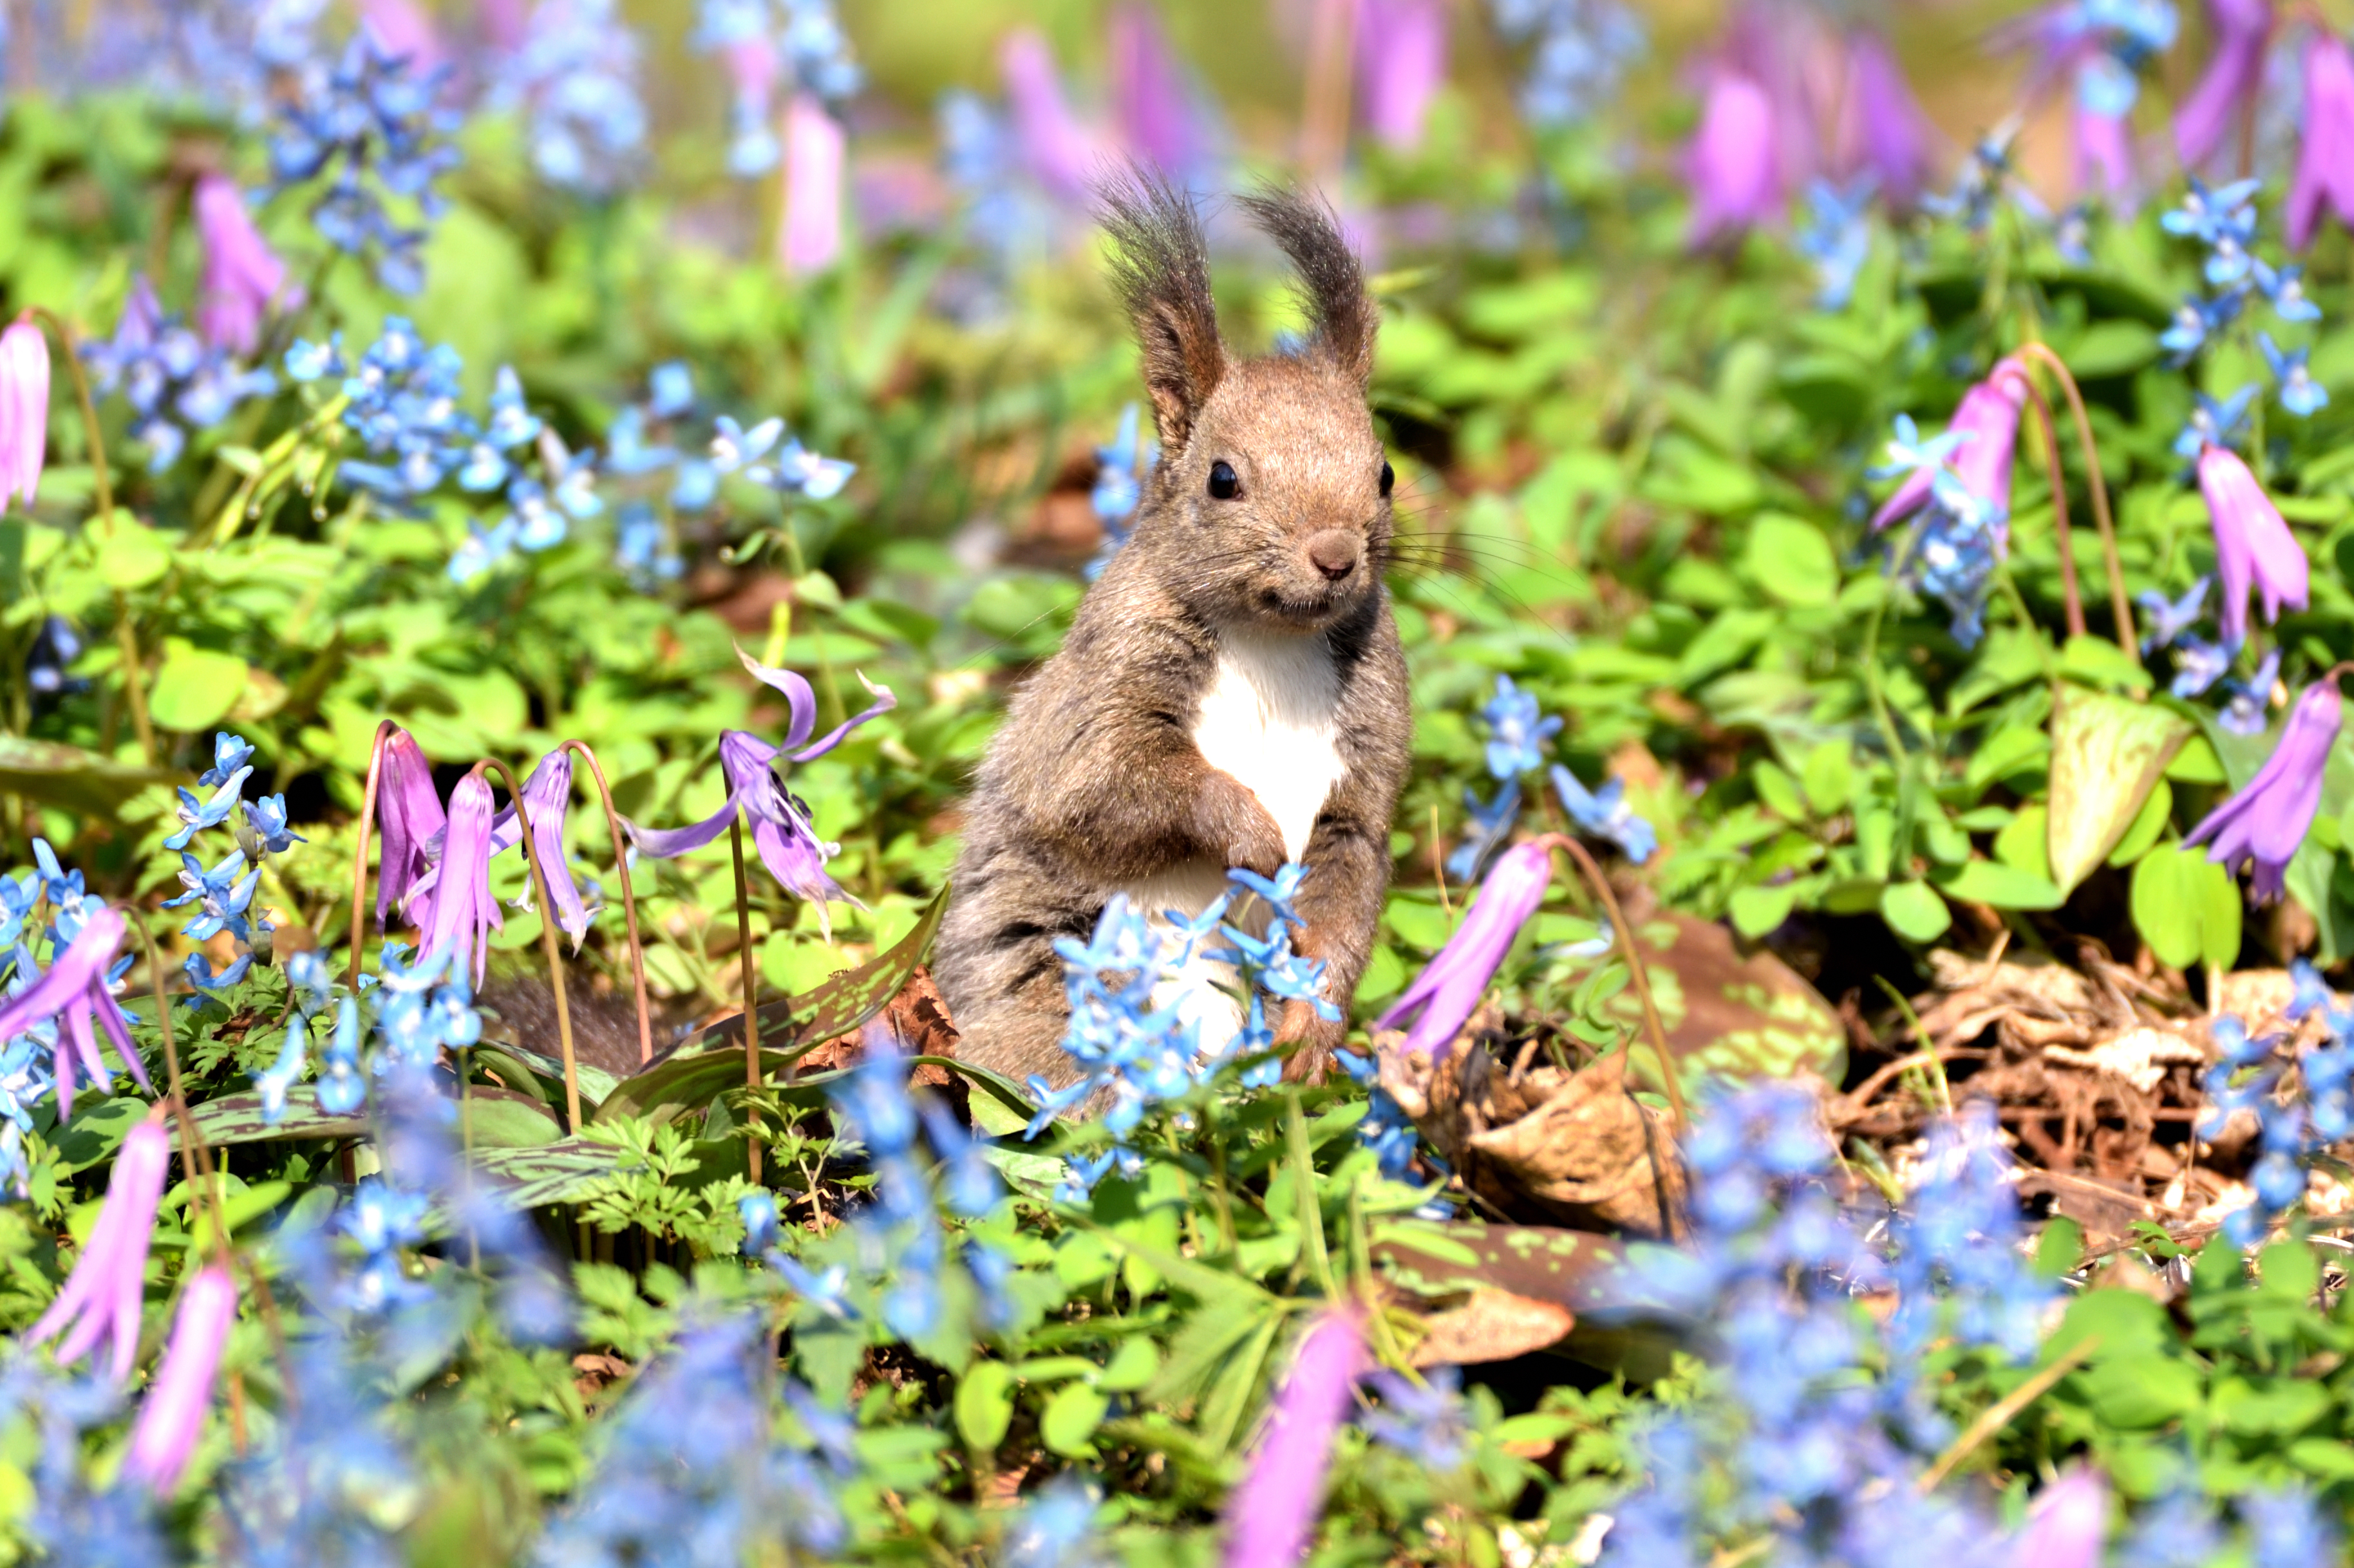 Hokkaido squirrel with Corydalis ambigua and Dogtooth violet in Urausu schrine